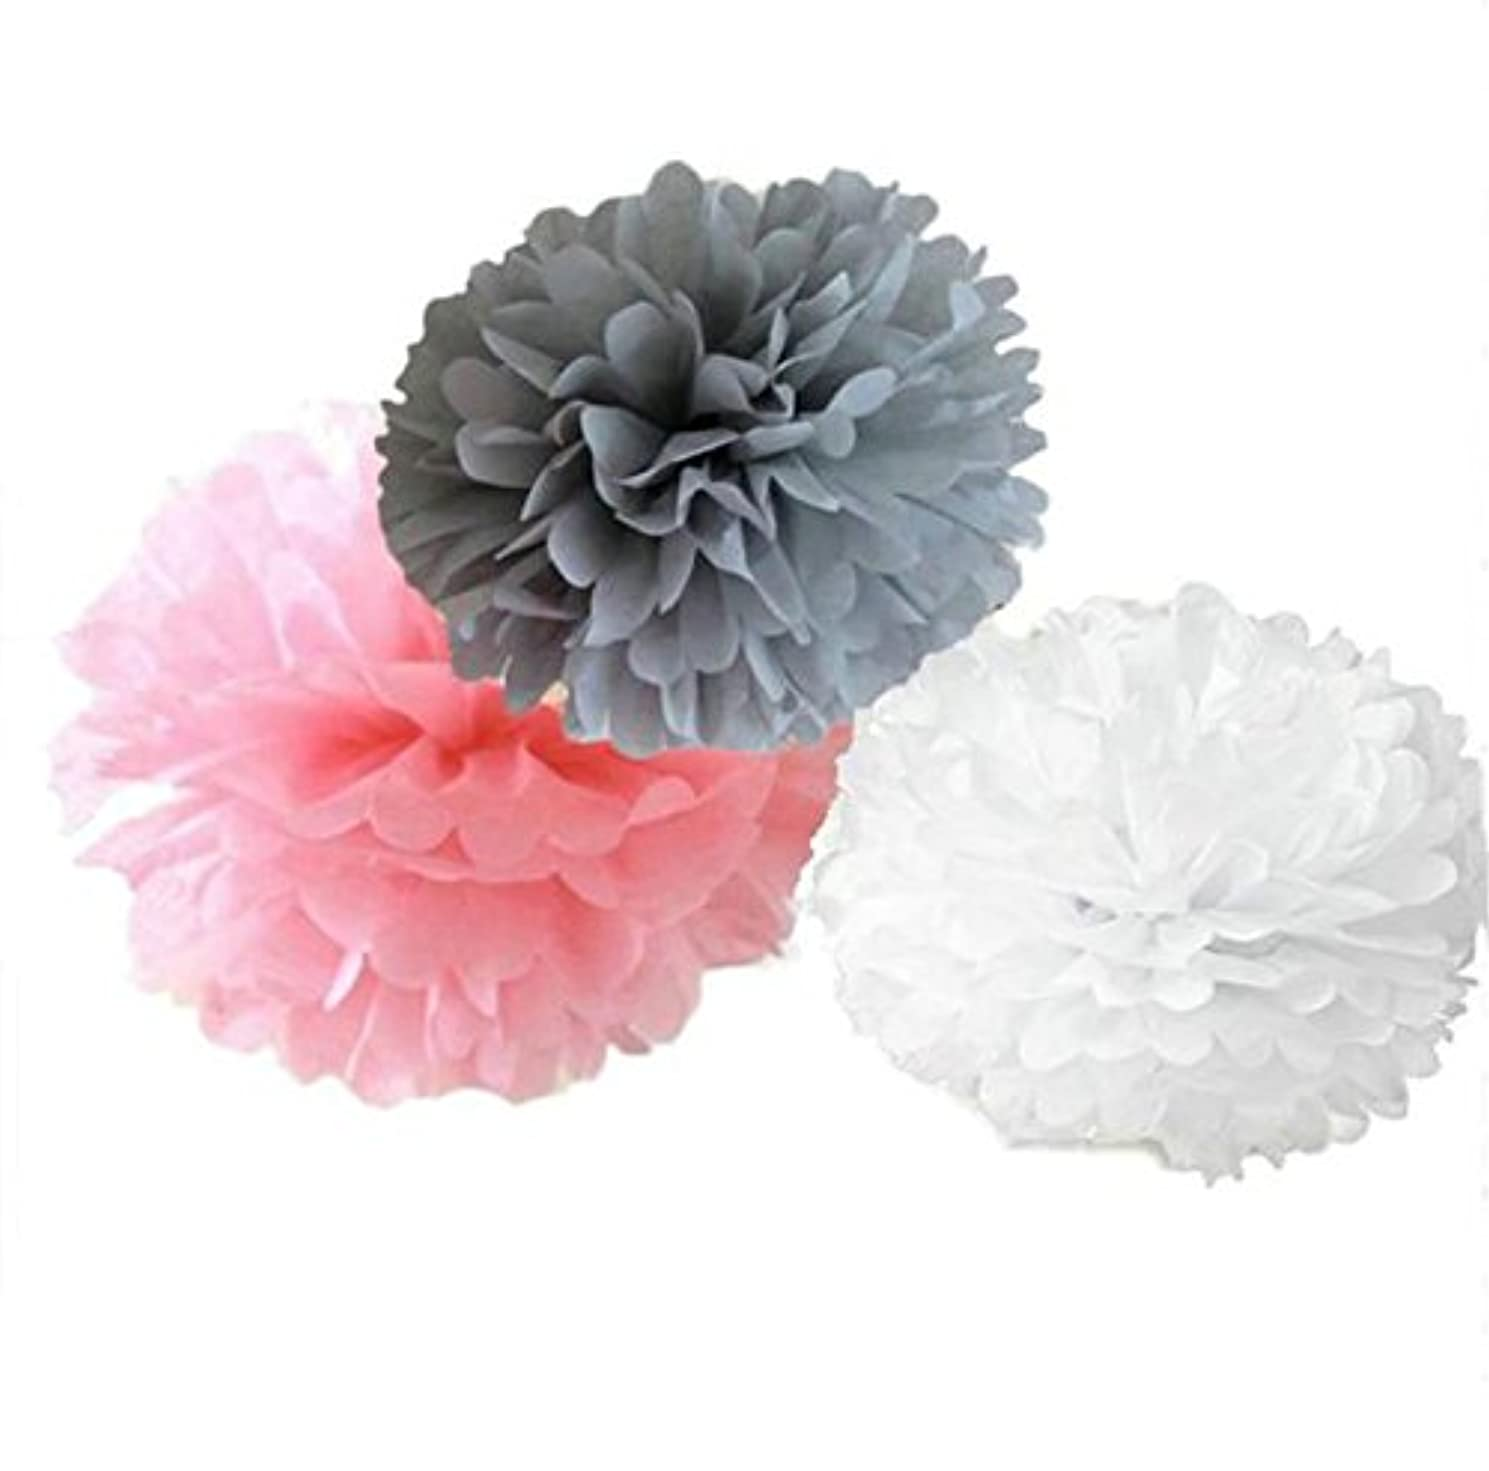 Since ? 12 Mixed White Gray Pink Party Tissue Pompoms Paper Flower Pom Poms Wedding Birthday Party Christmas Girls Room Decoration SIC-01699 unkikohotcd5259